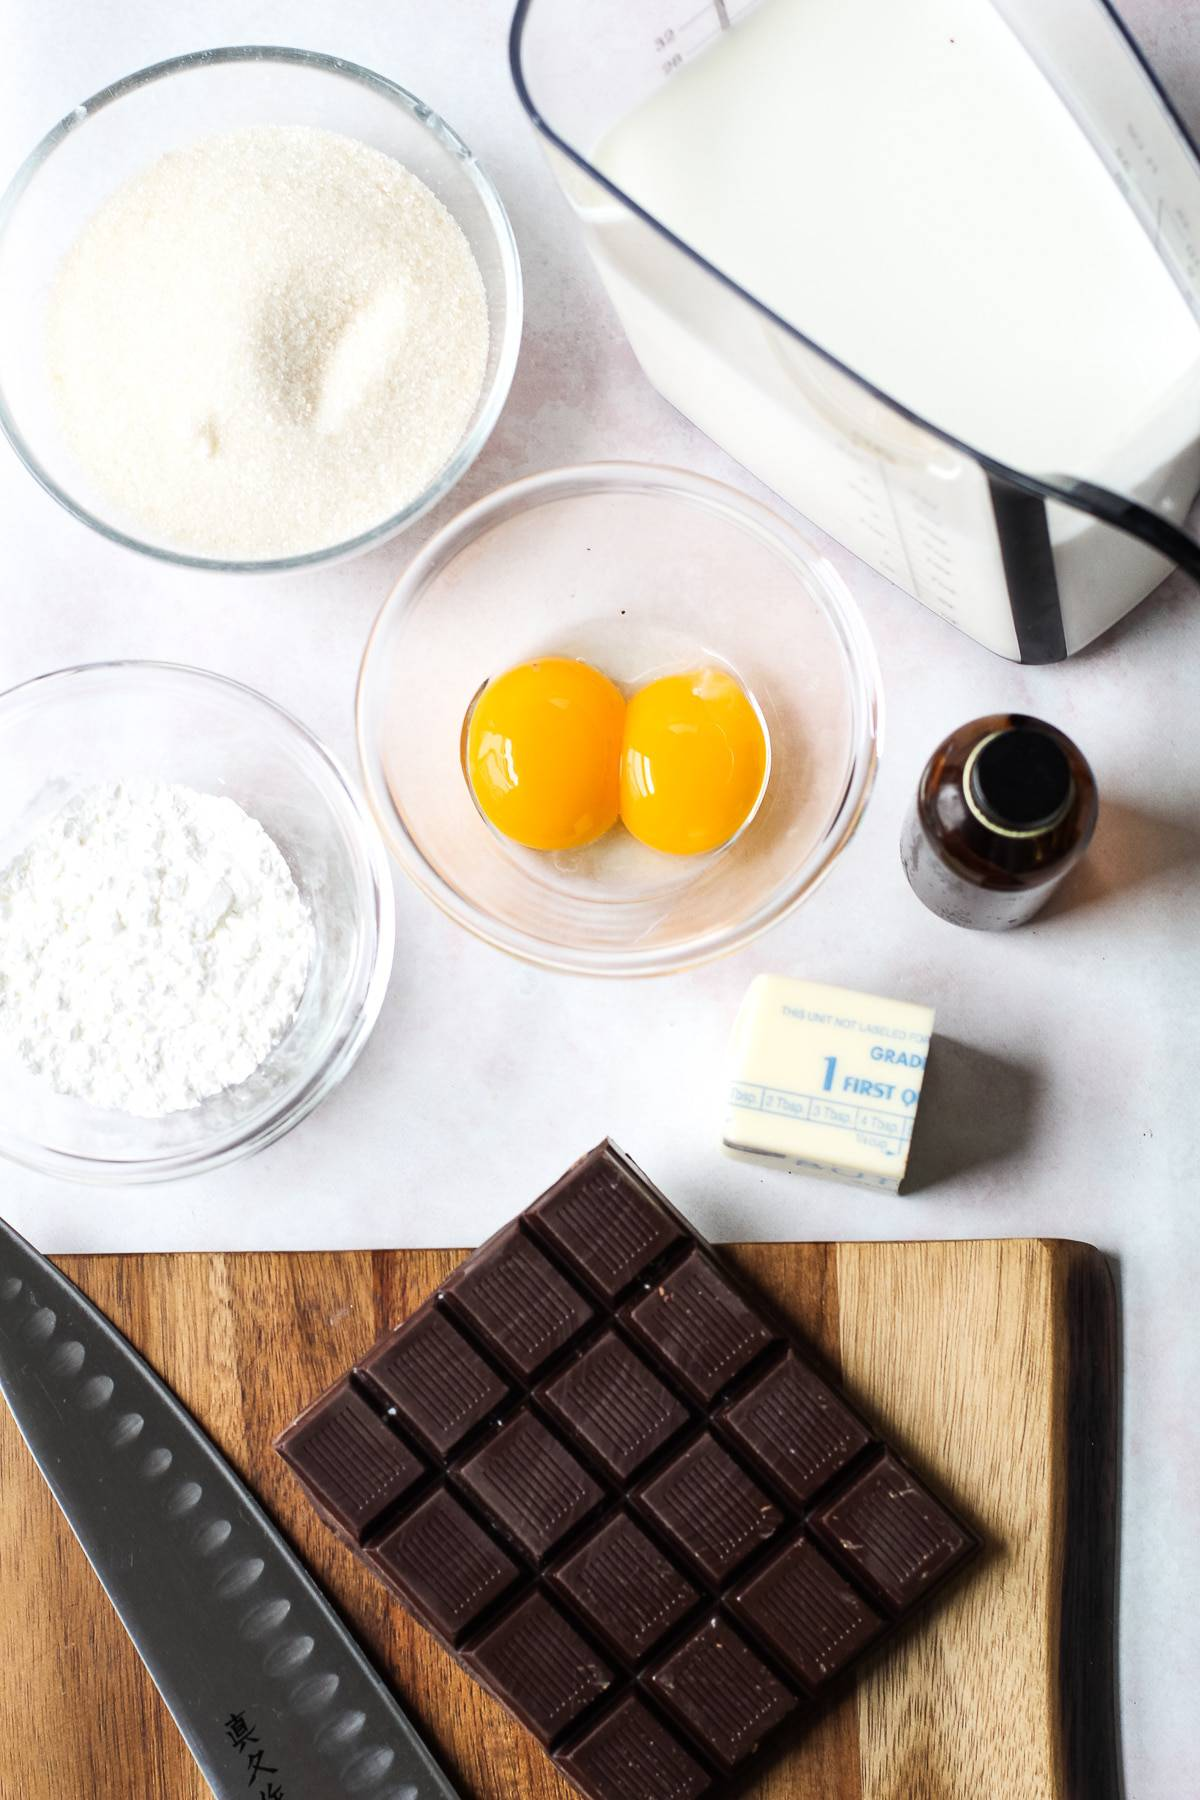 Ingredients for homemade chocolate pudding.